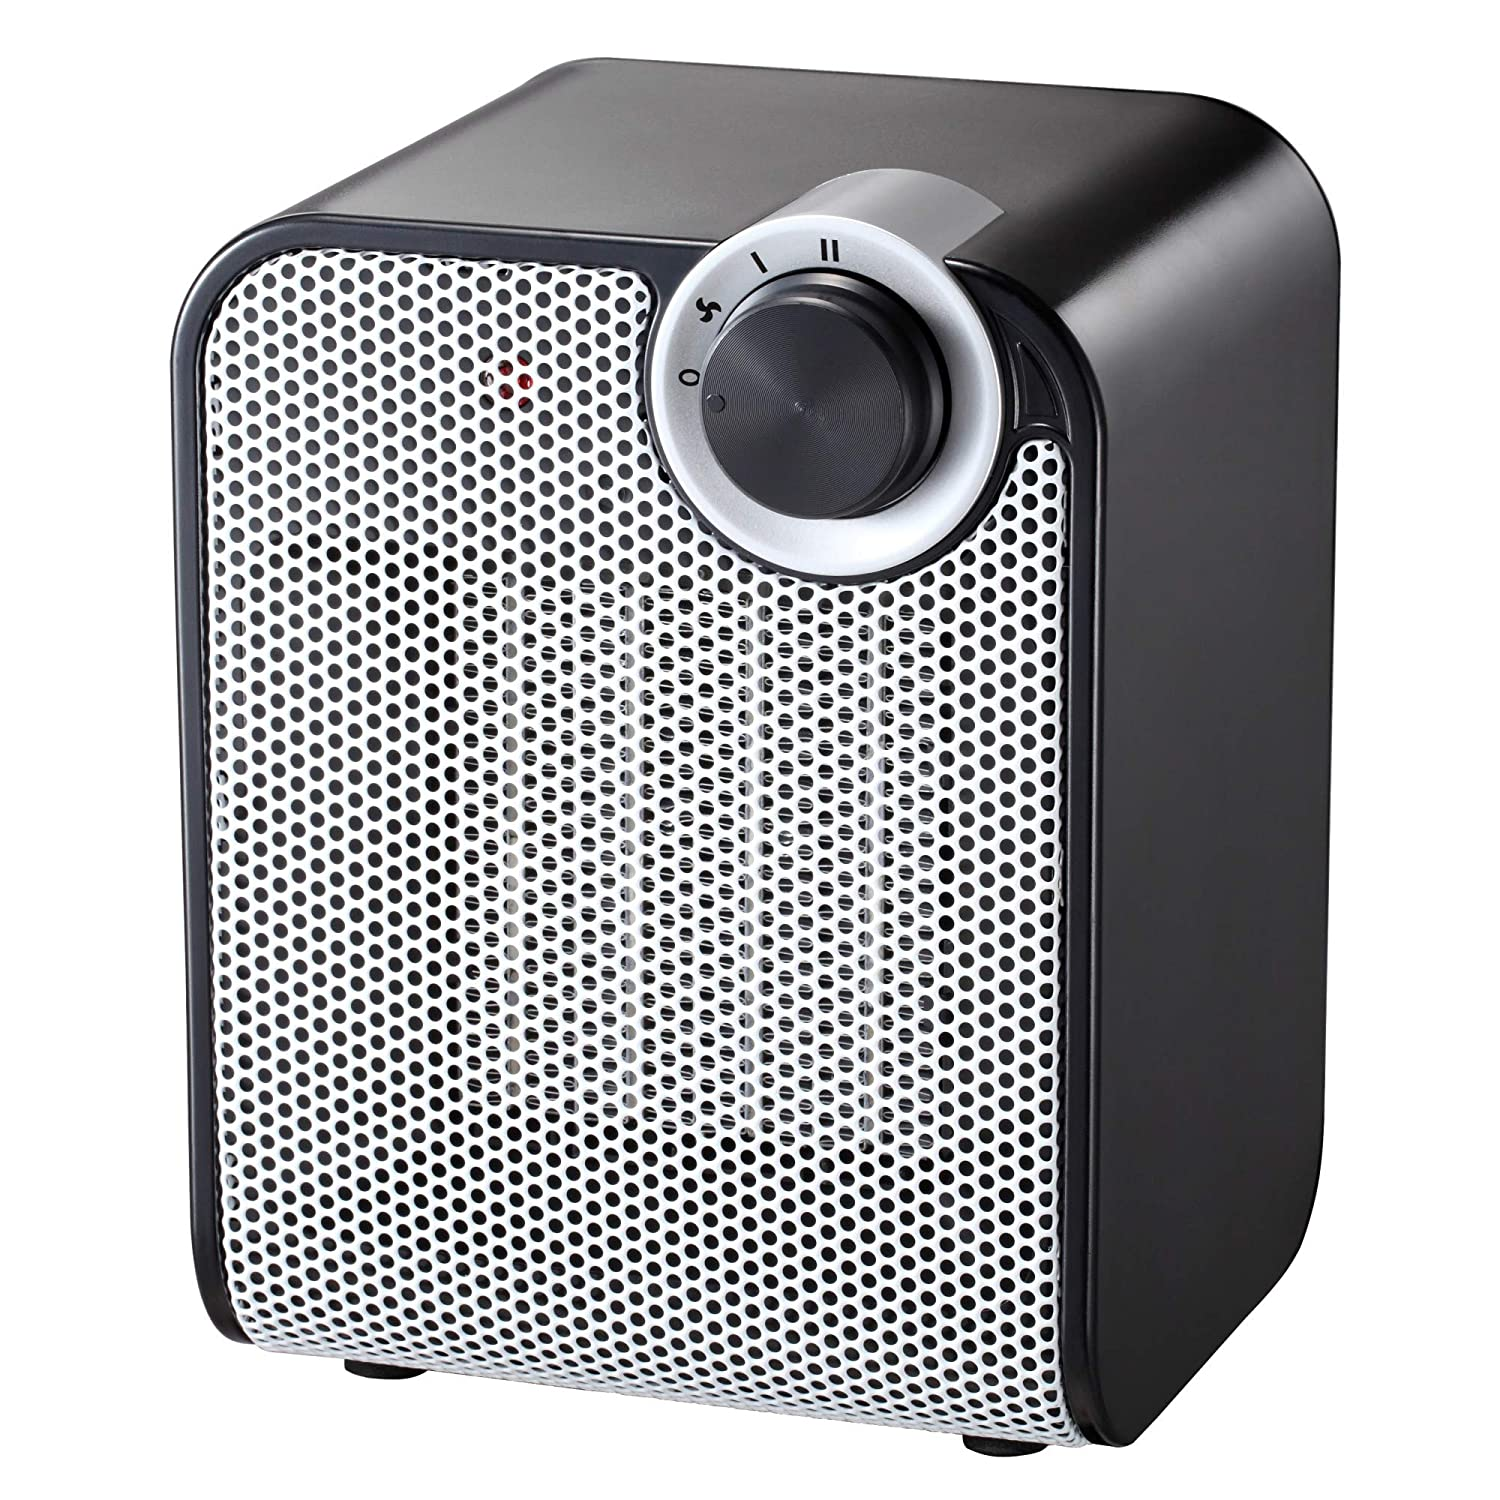 andily Space Heater Electric Heater for Home and Office Ceramic Small Heater with Thermostat, 750W/1500W A-750-1500